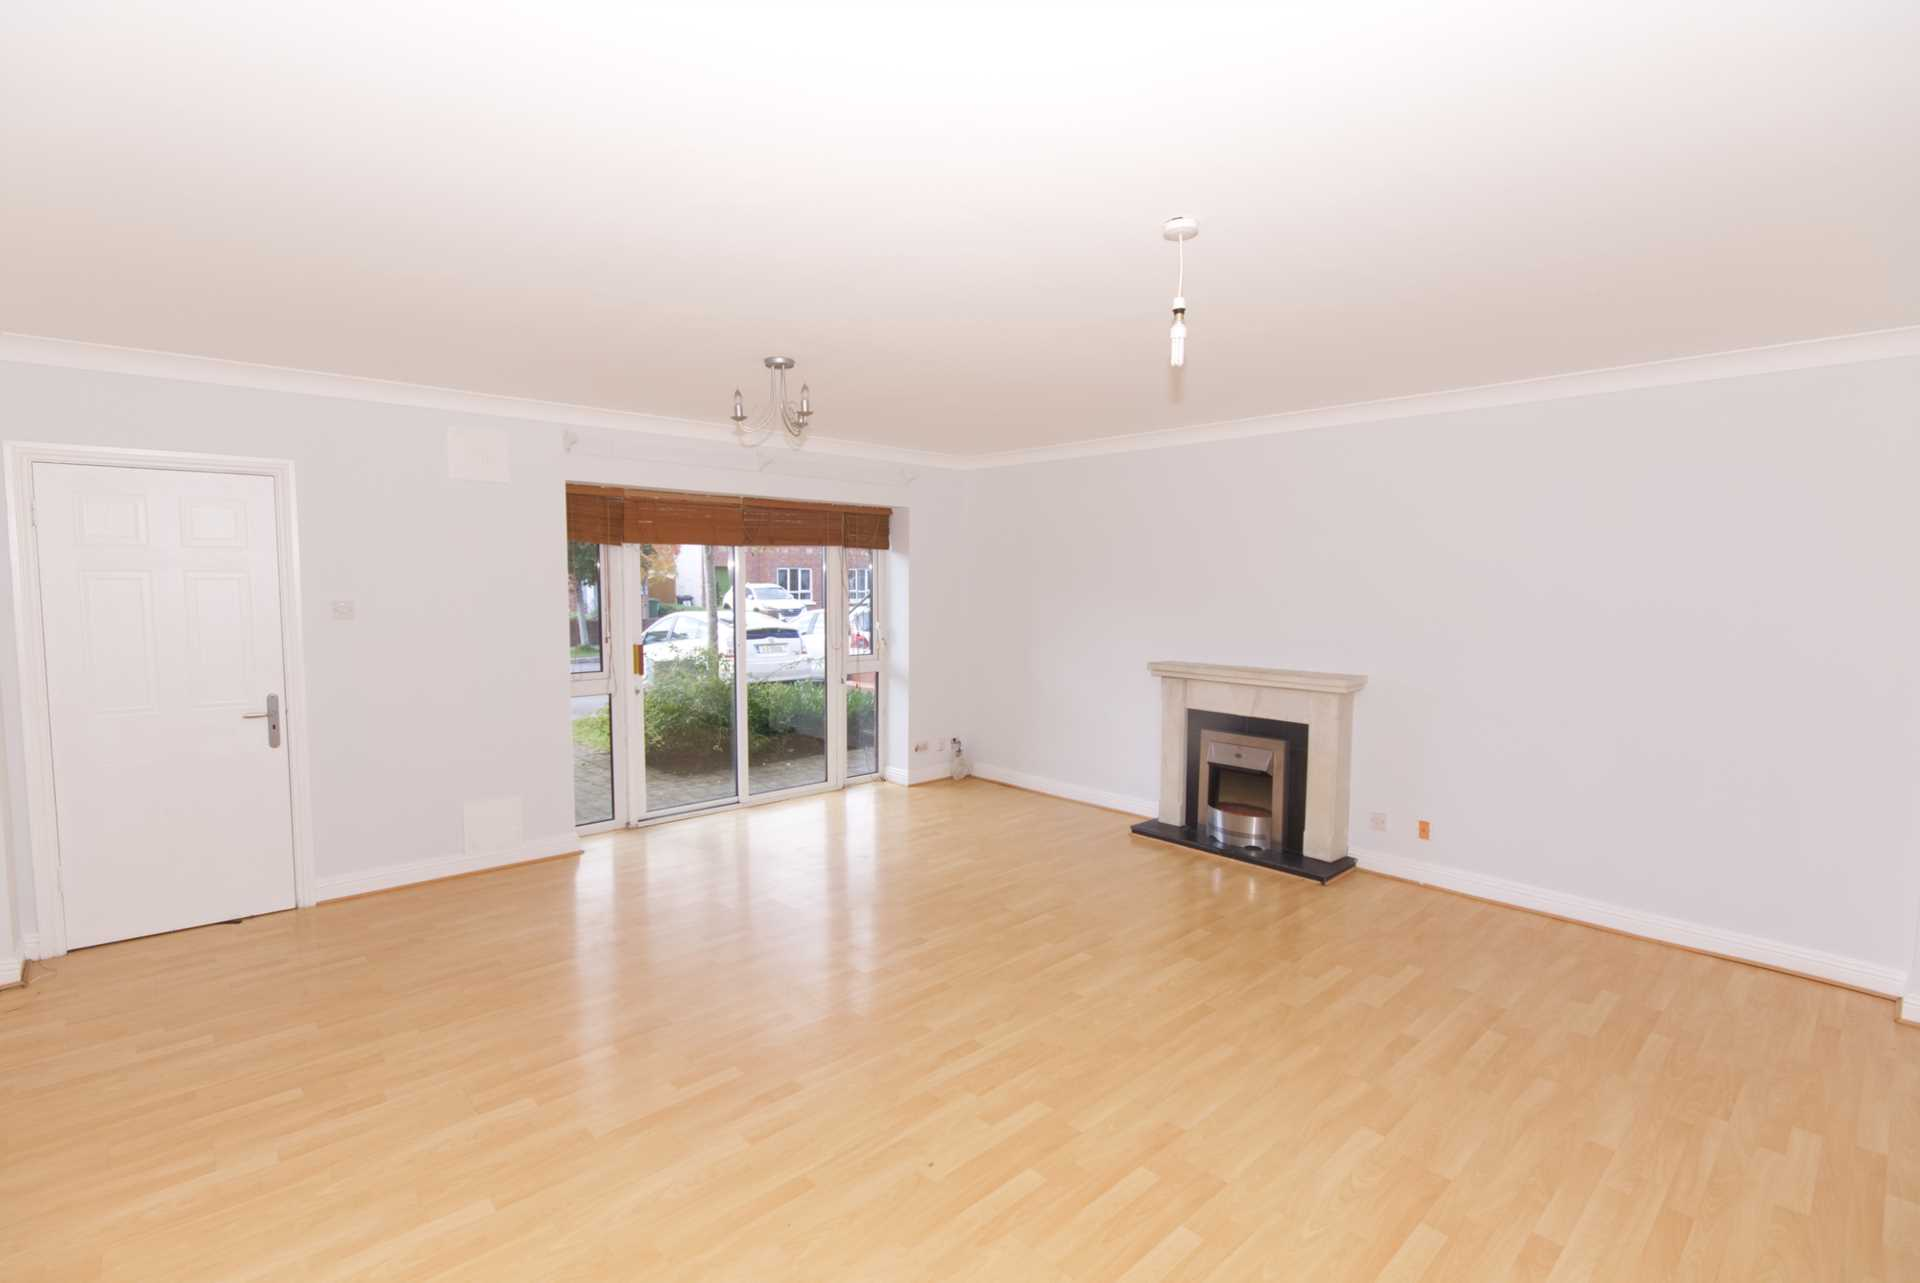 19 Carrigmore Court, Citywest, Dublin 24, Image 3